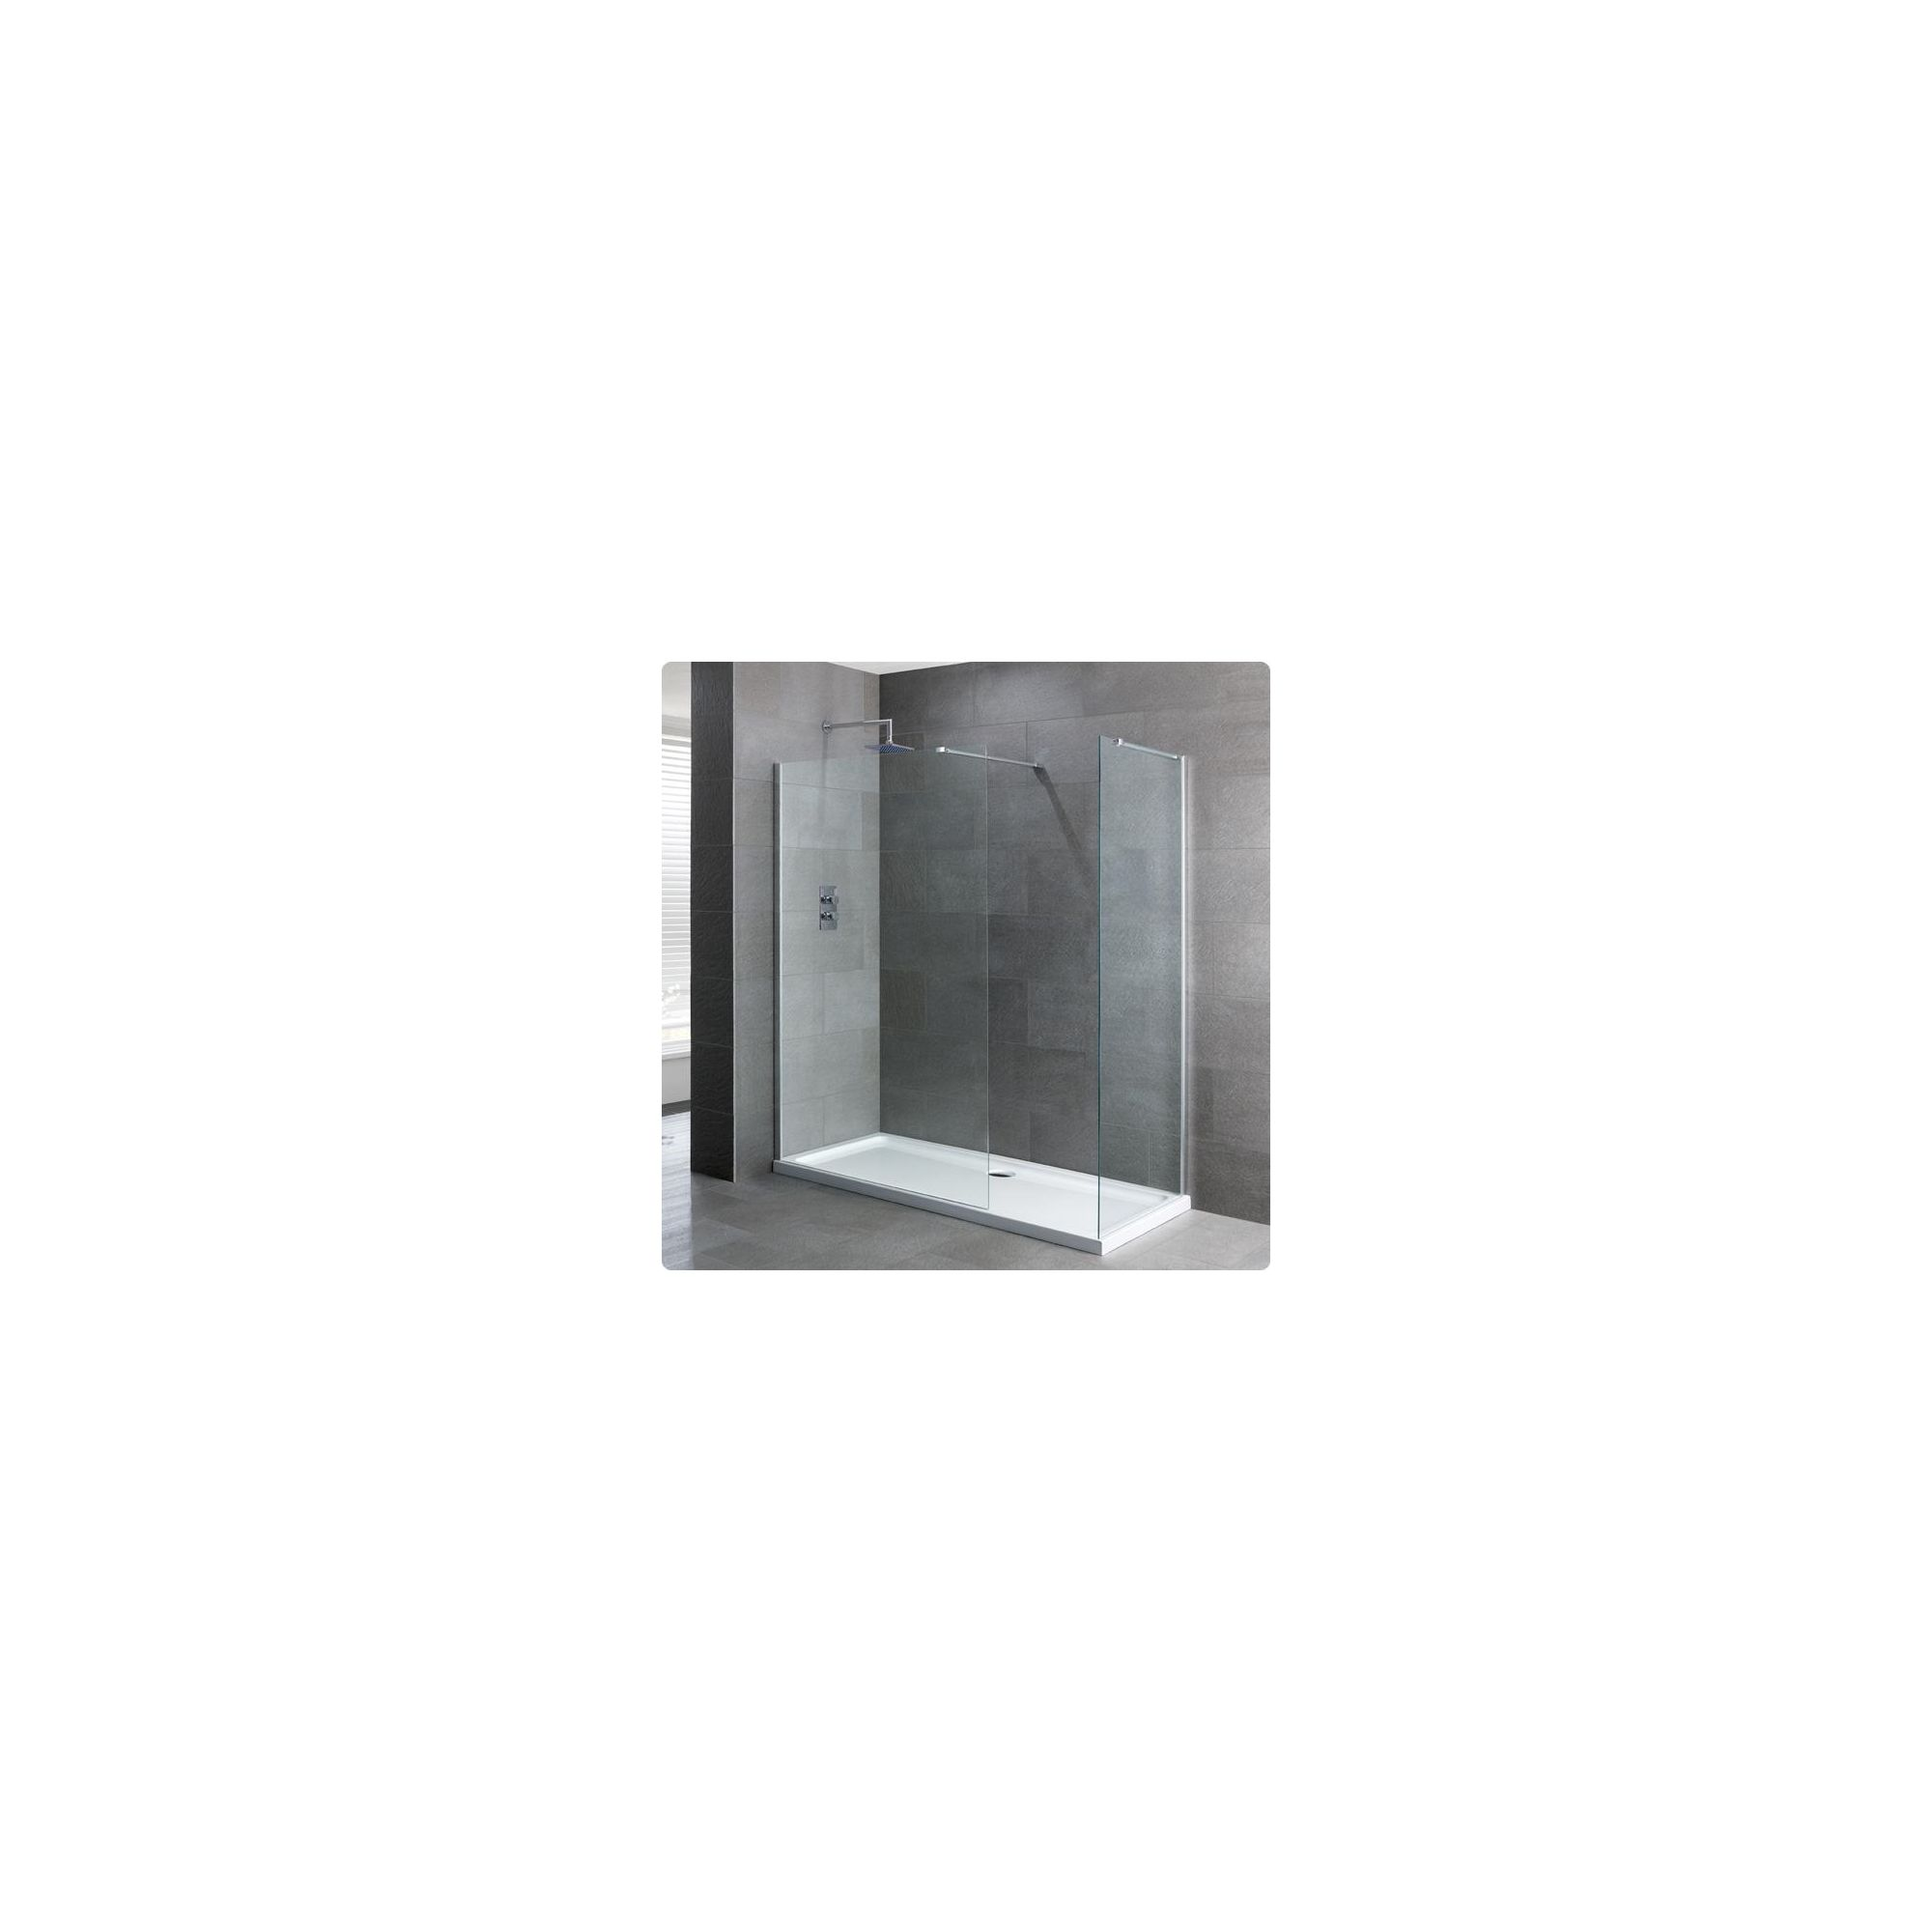 Duchy Select Silver Walk-In Shower Enclosure 1700mm x 760mm, Standard Tray, 6mm Glass at Tesco Direct